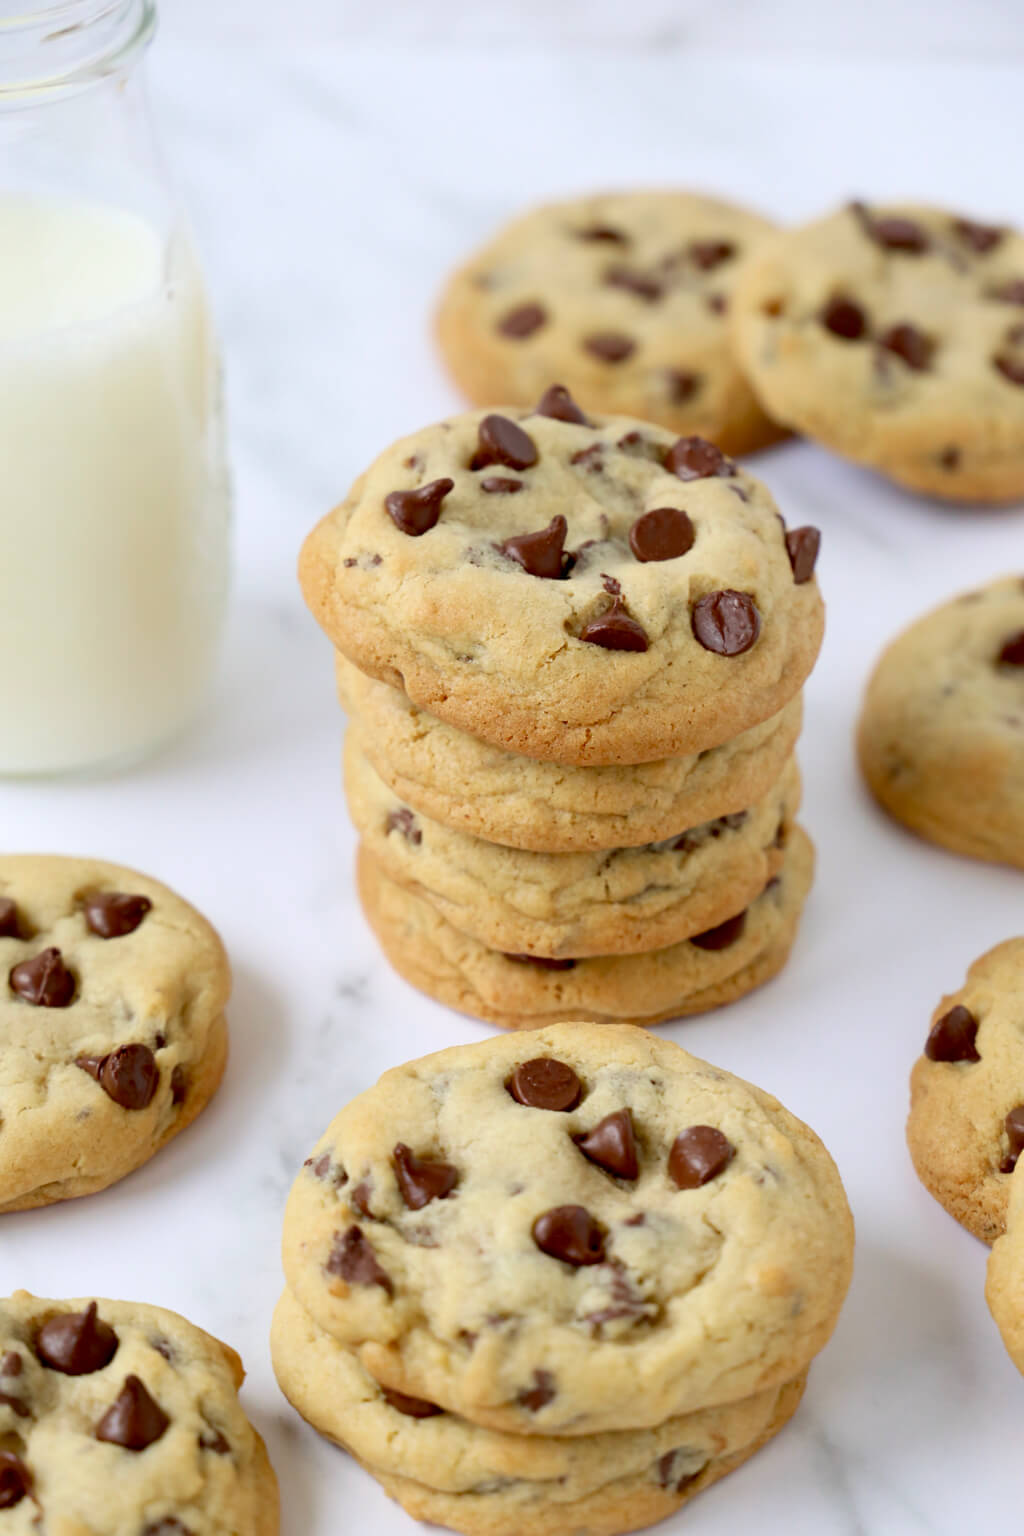 a stack of chocolate chip cookies surround by more chocolate chip cookies